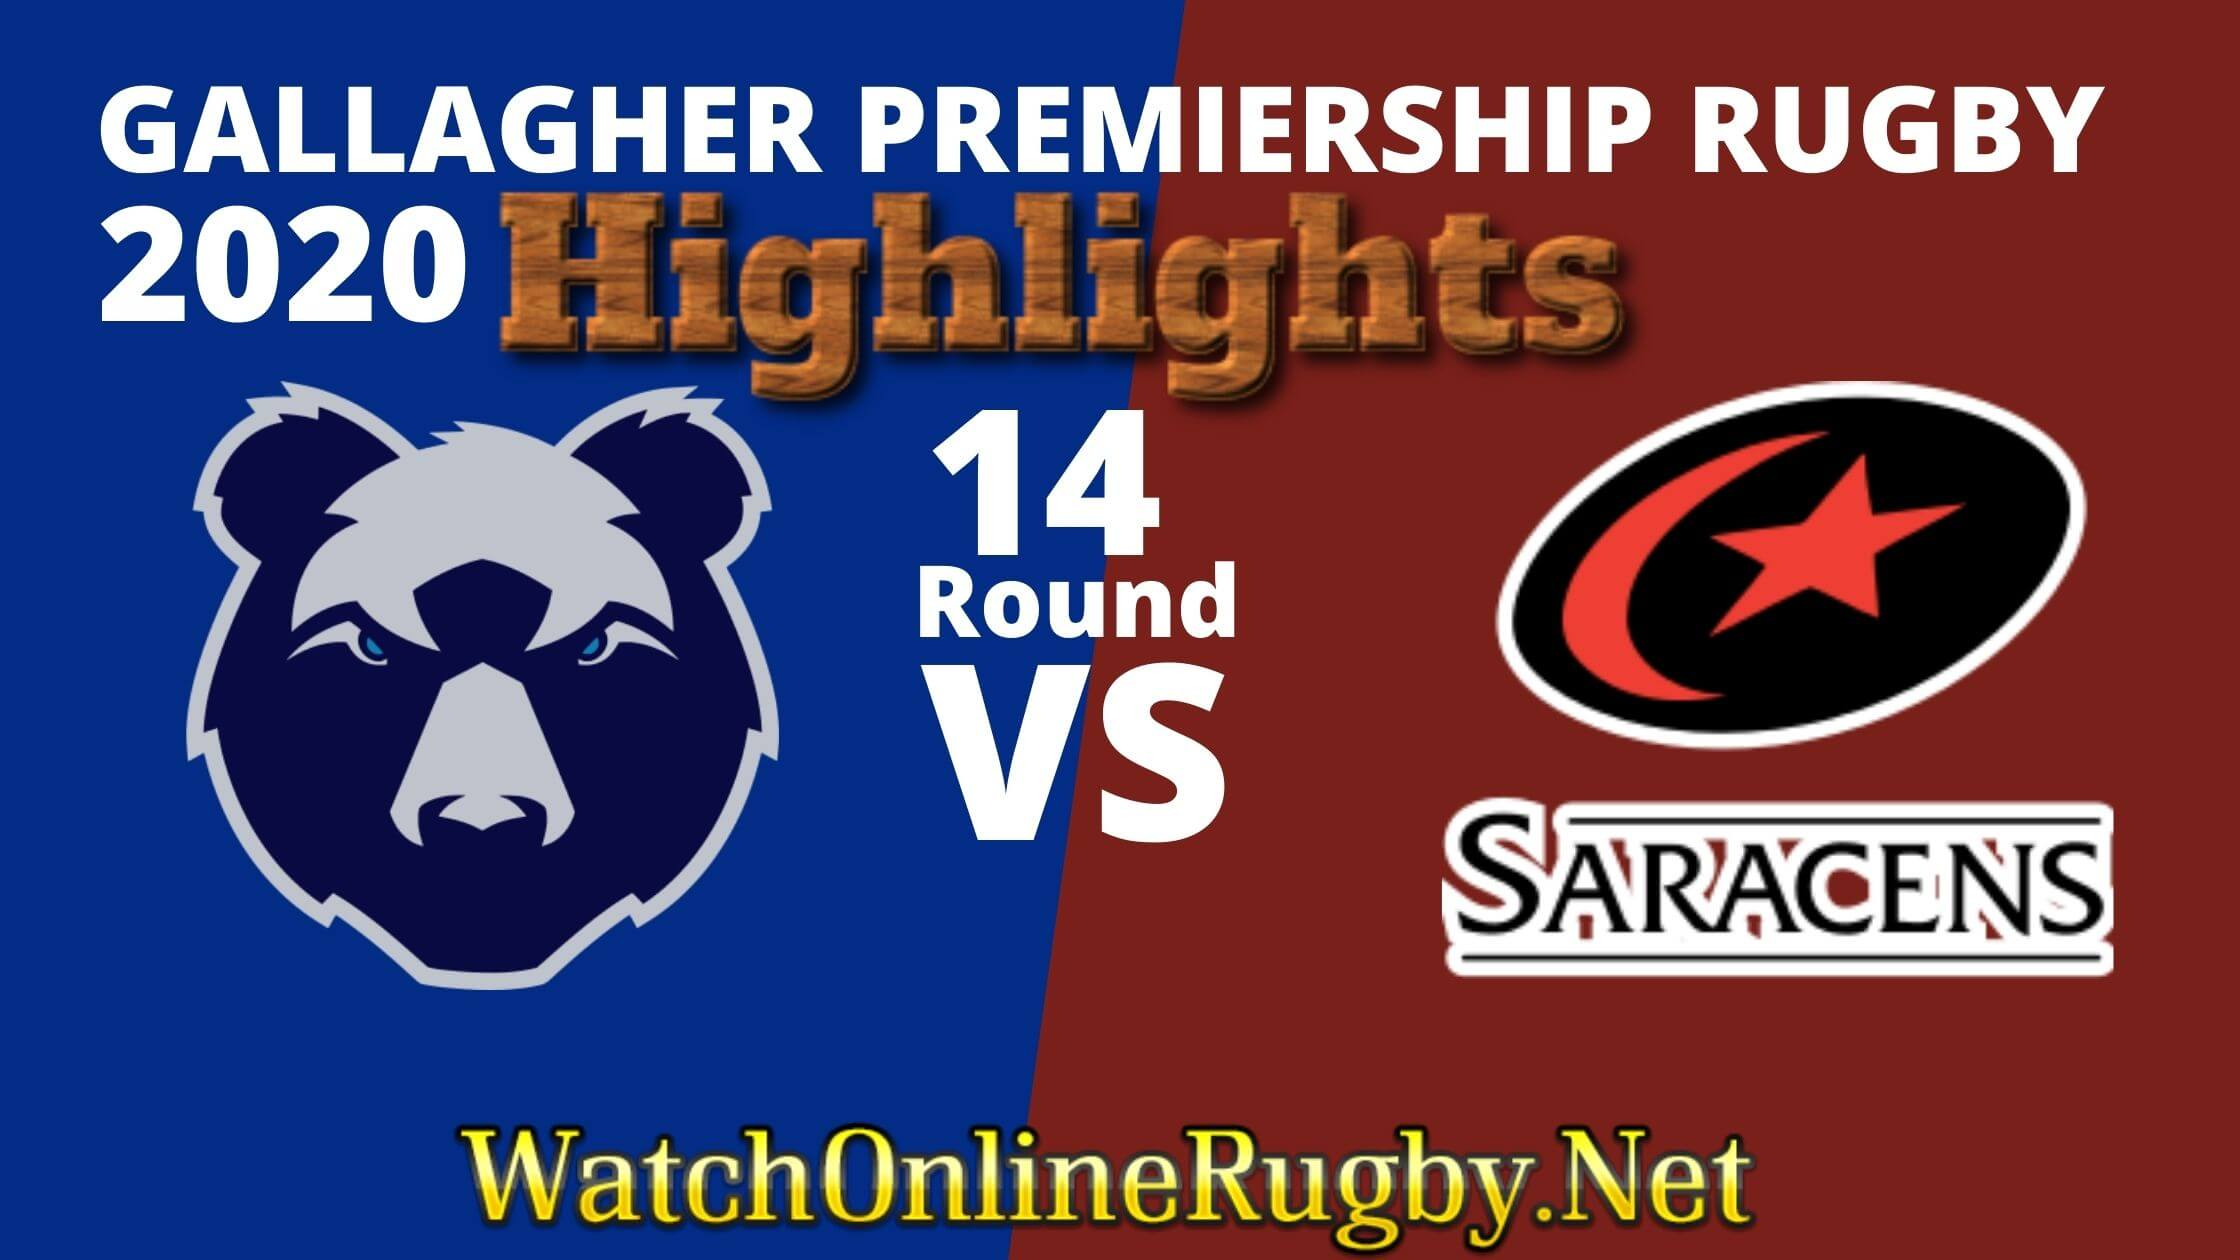 Bristol Bears Vs Saracens Highlights 2020 Rd 14 Premiership Rugby